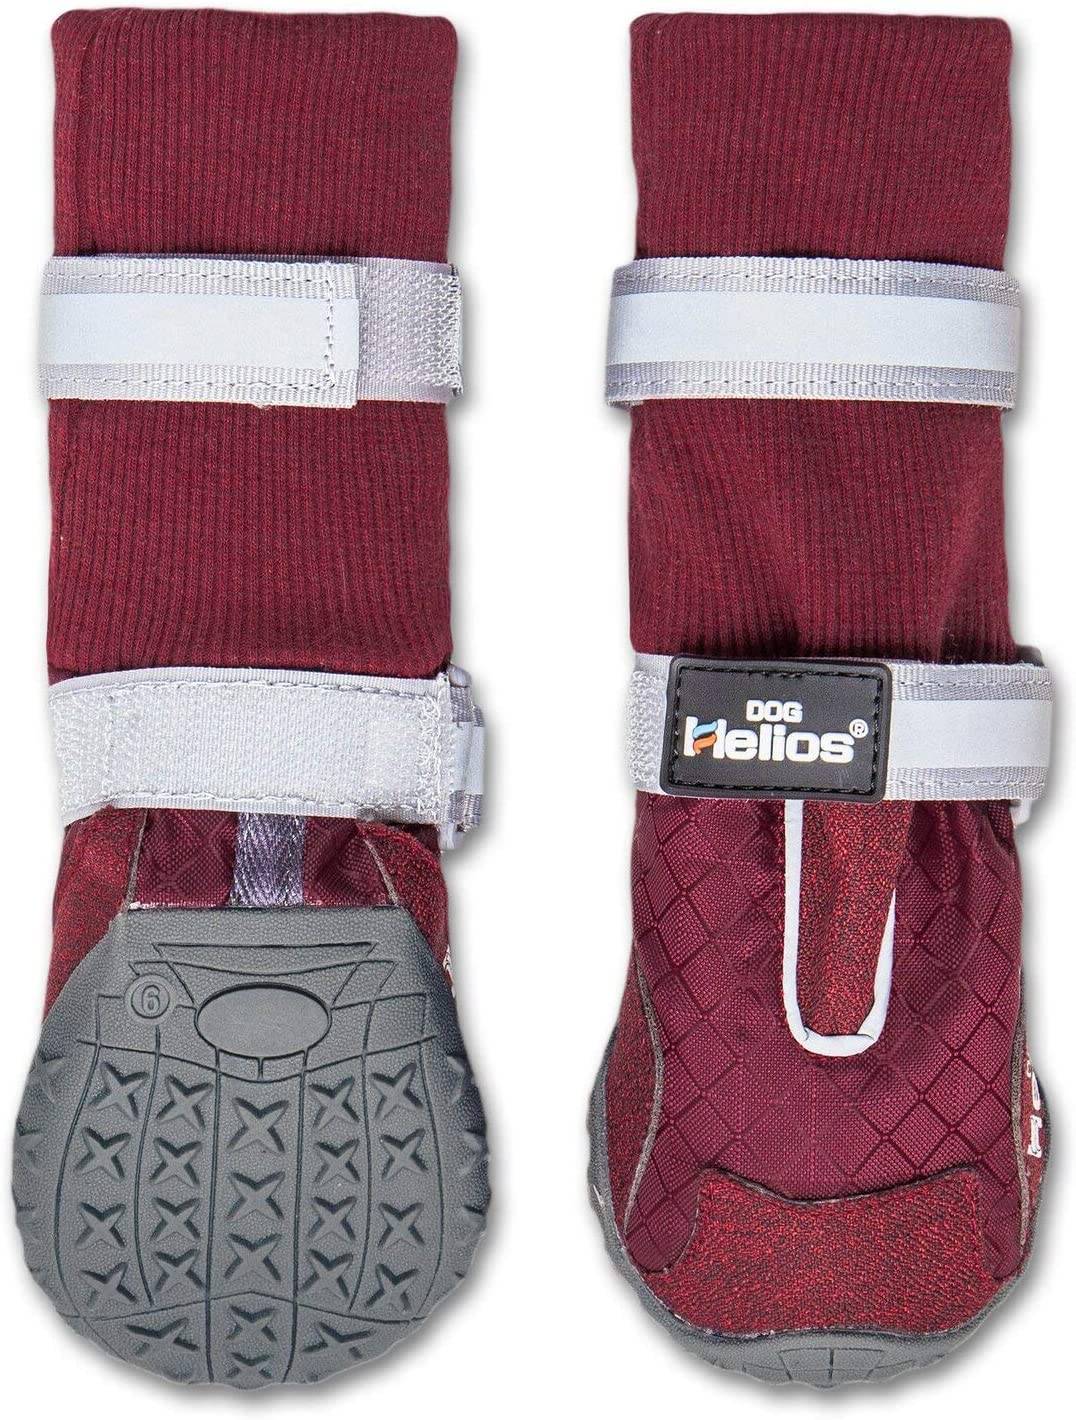 DOG HELIOS Max 80% 2021new shipping free shipping OFF Dog Shoes